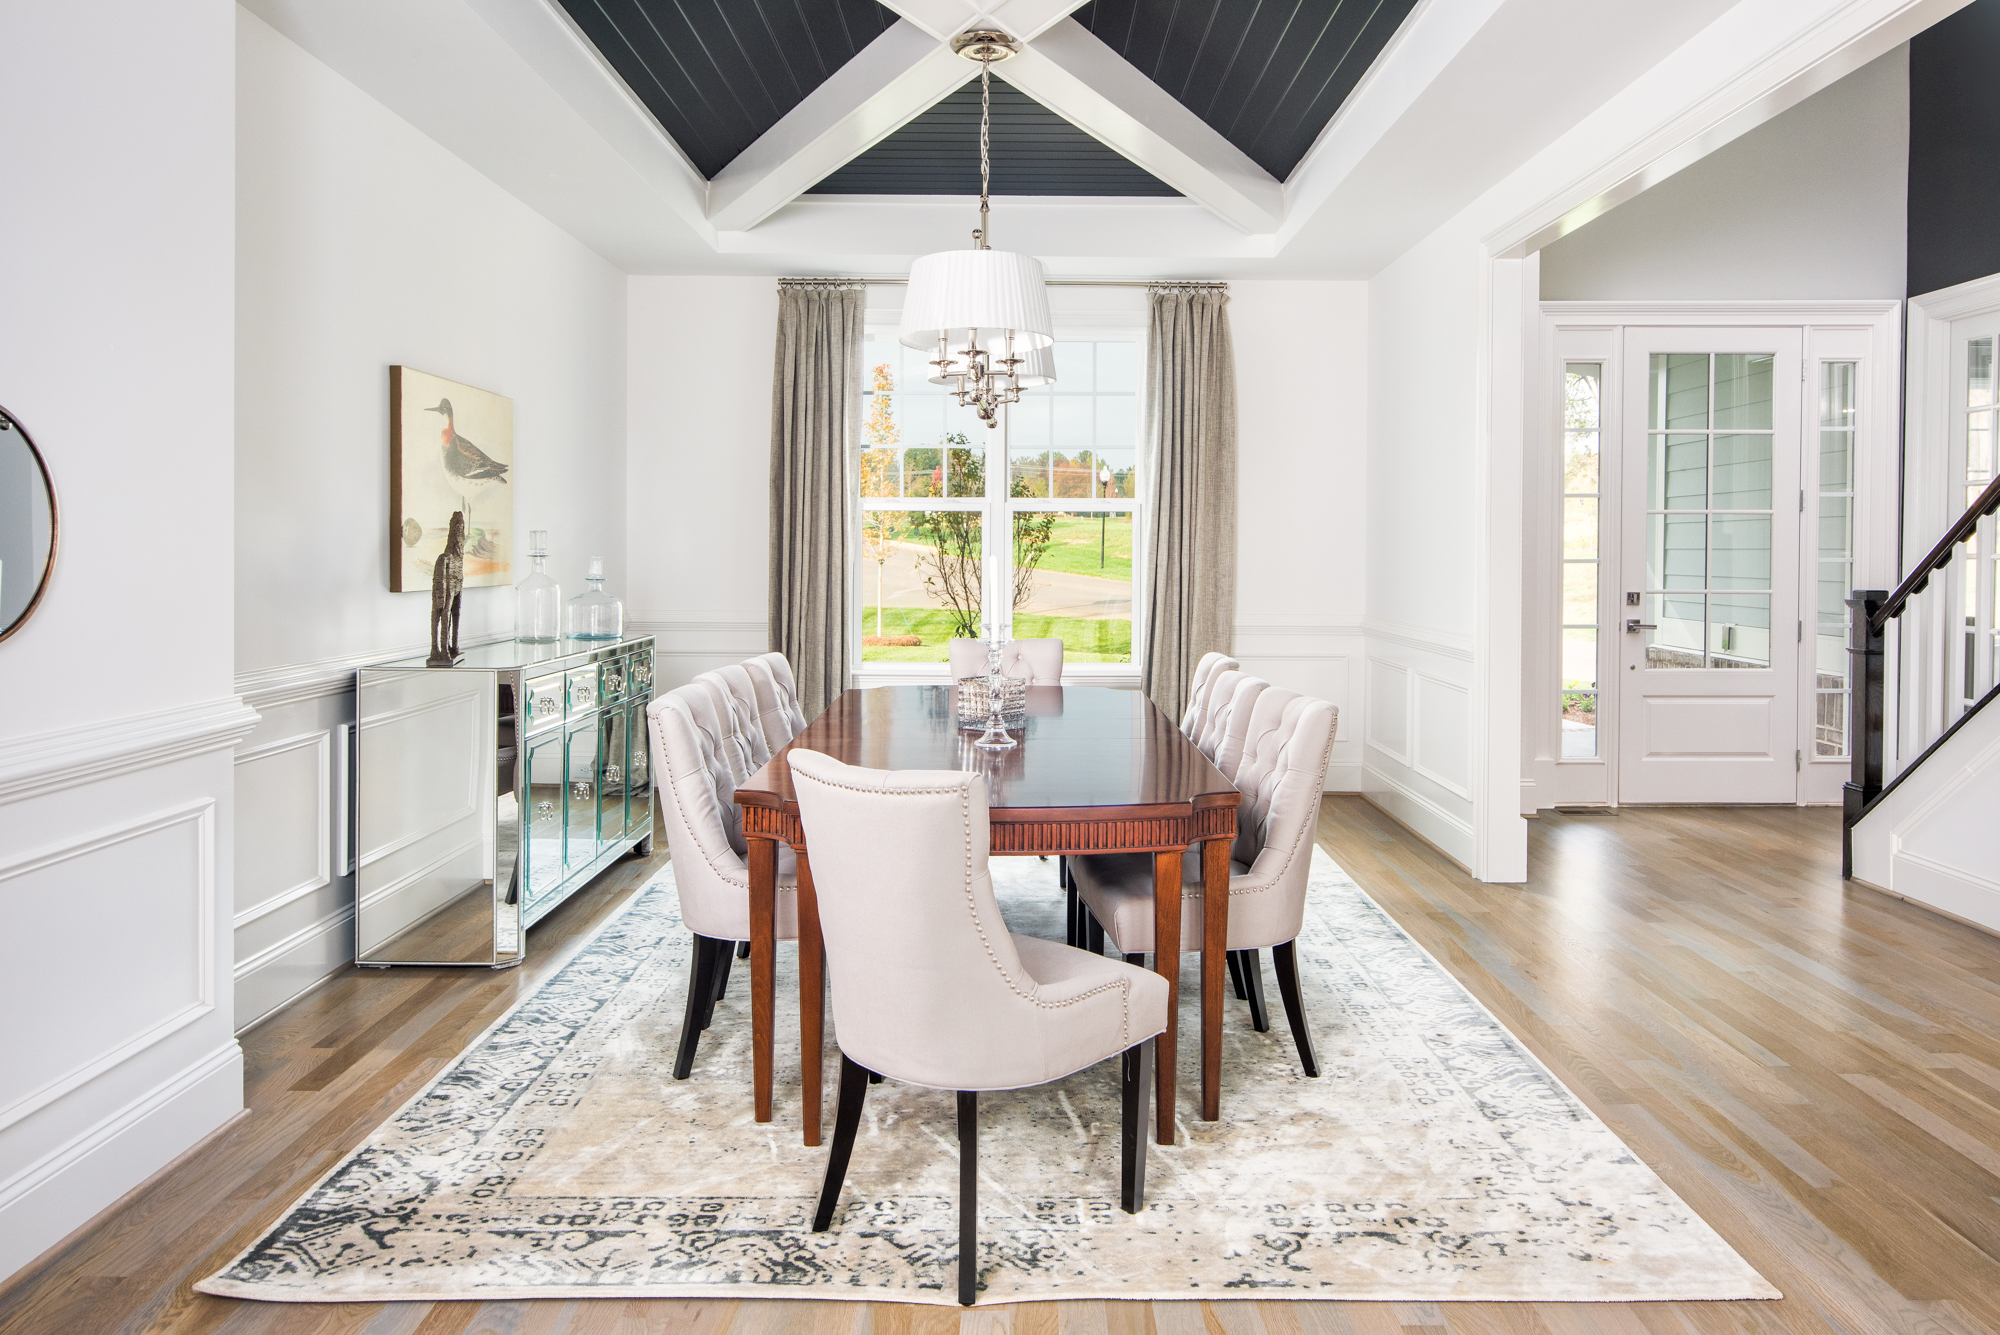 Top 4 Home Design Trends For 2017 Peachtree Residential